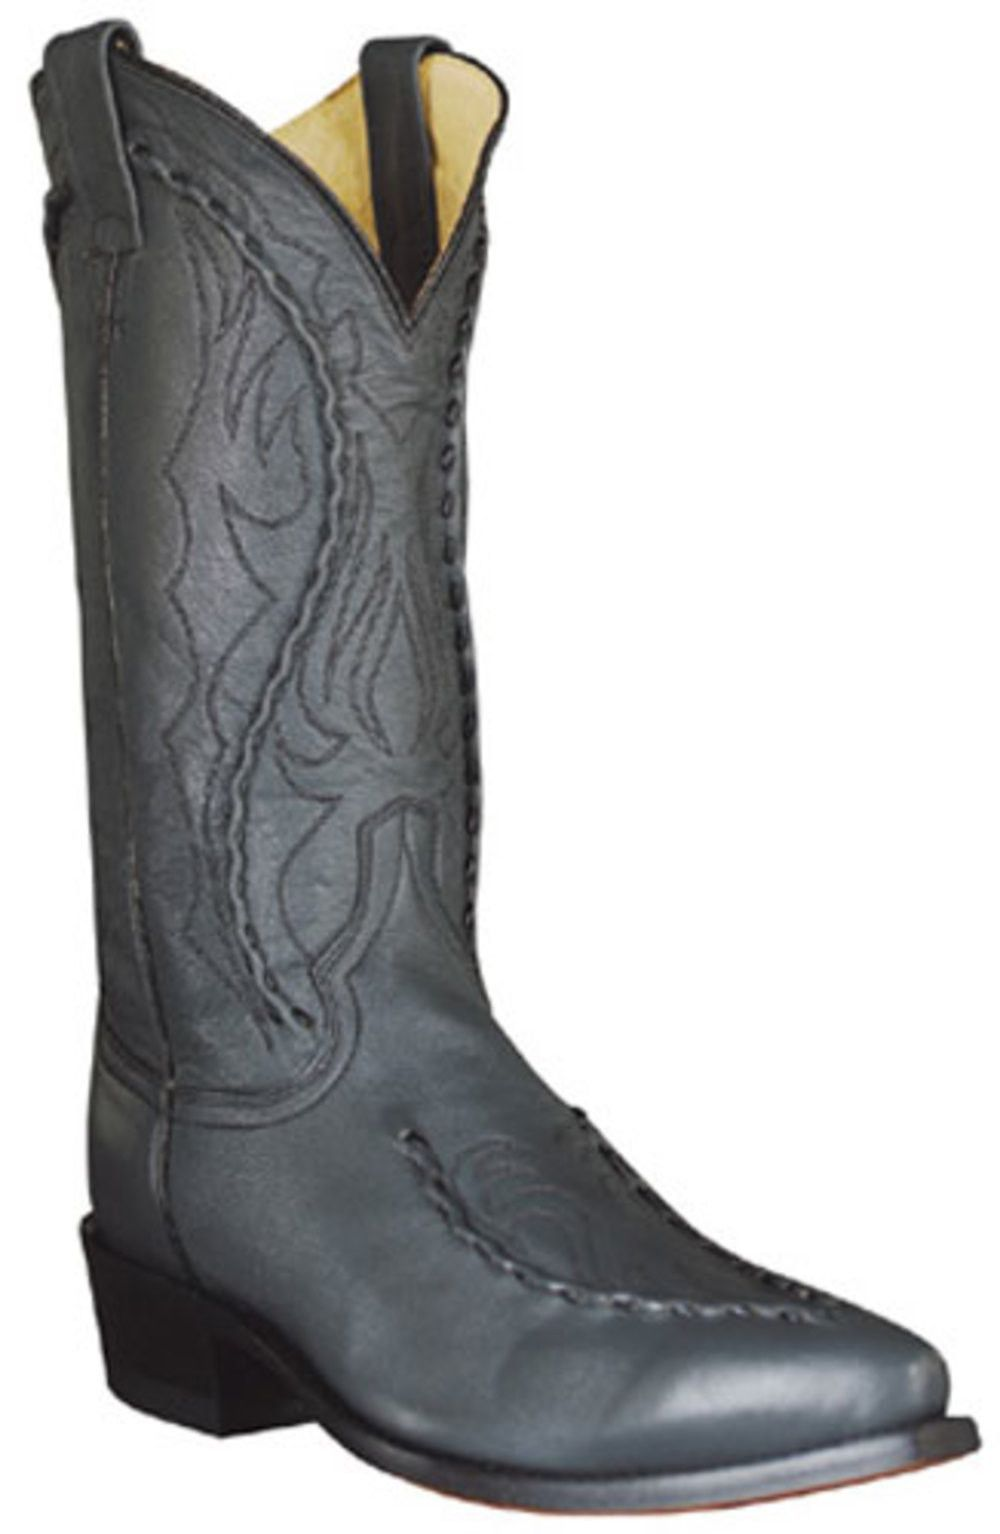 13'' Pull On Western Boots